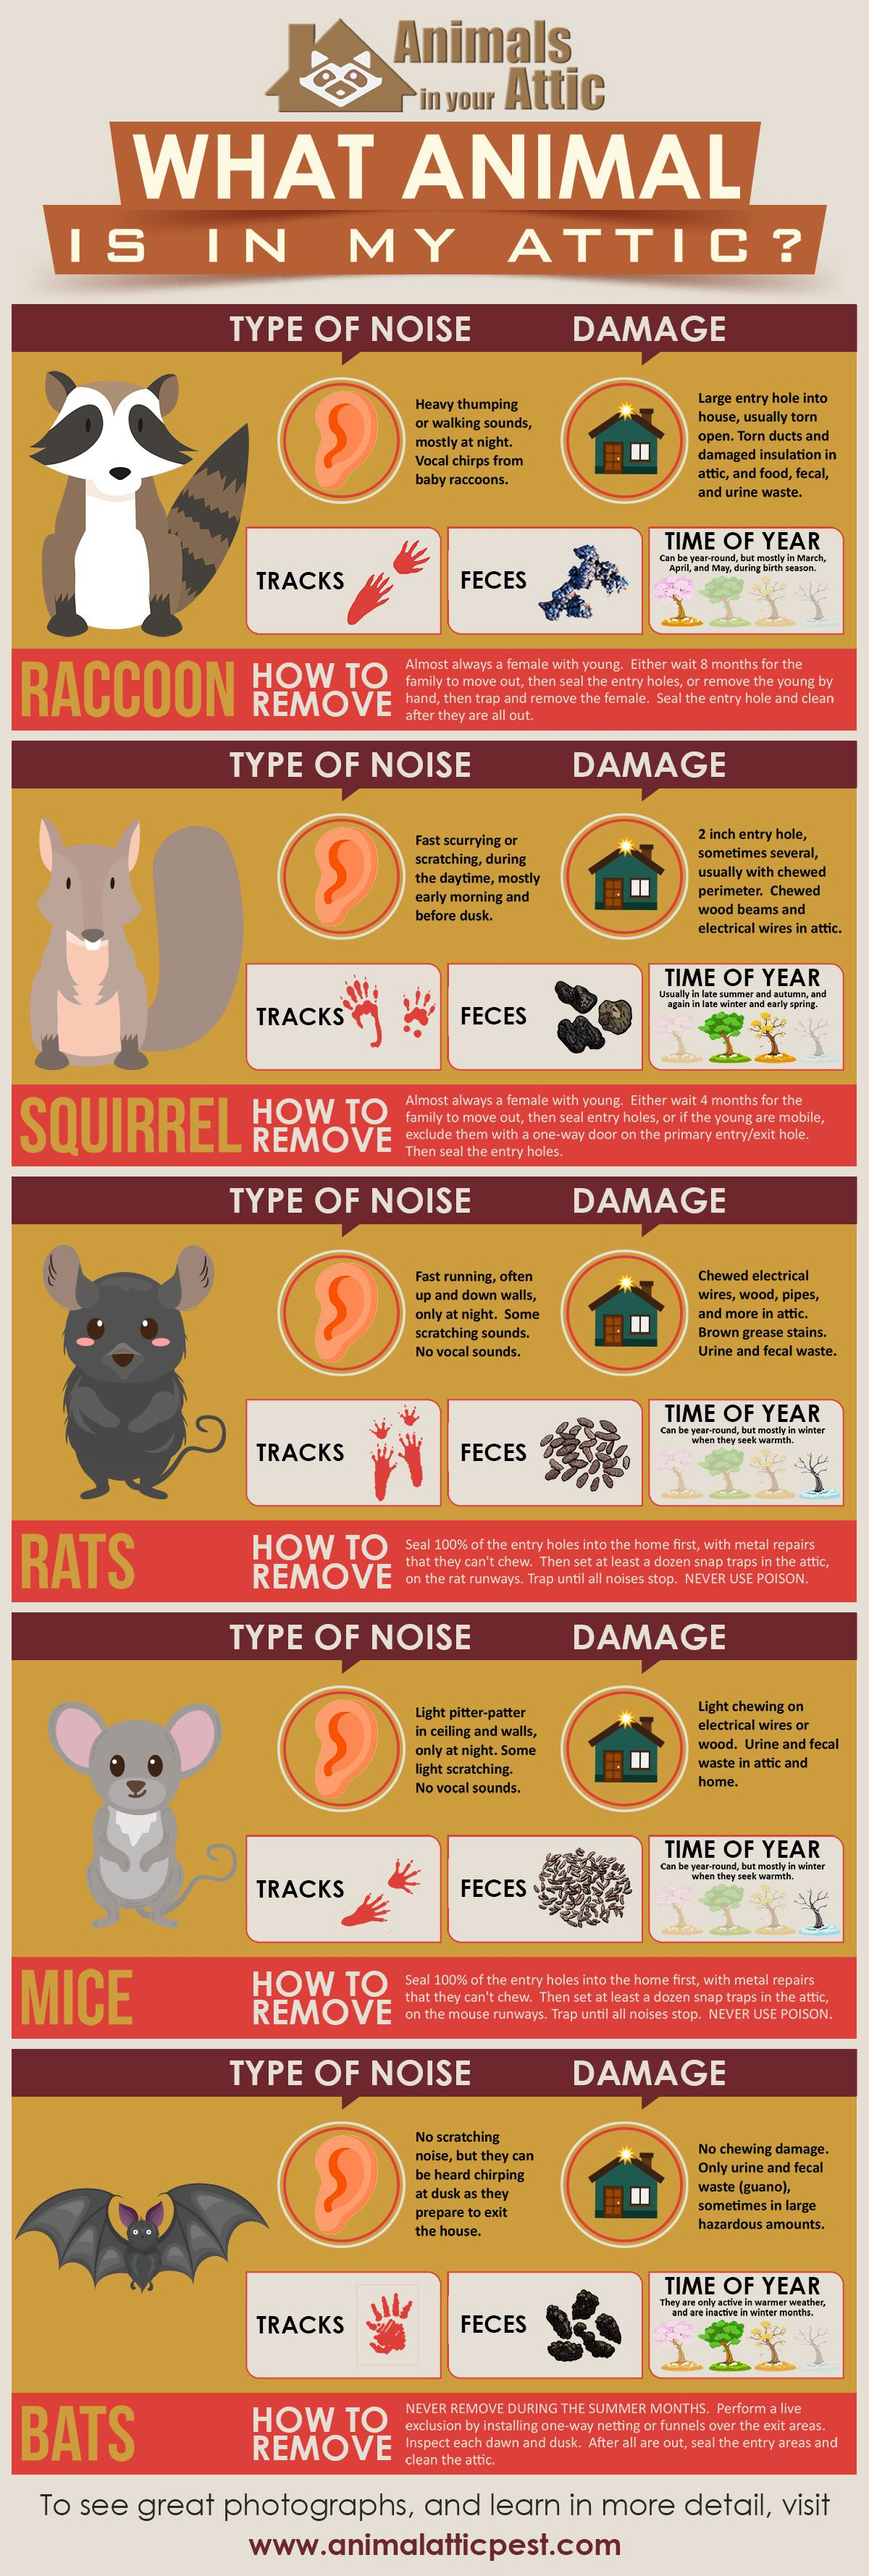 19++ Animal in attic scratching at night ideas